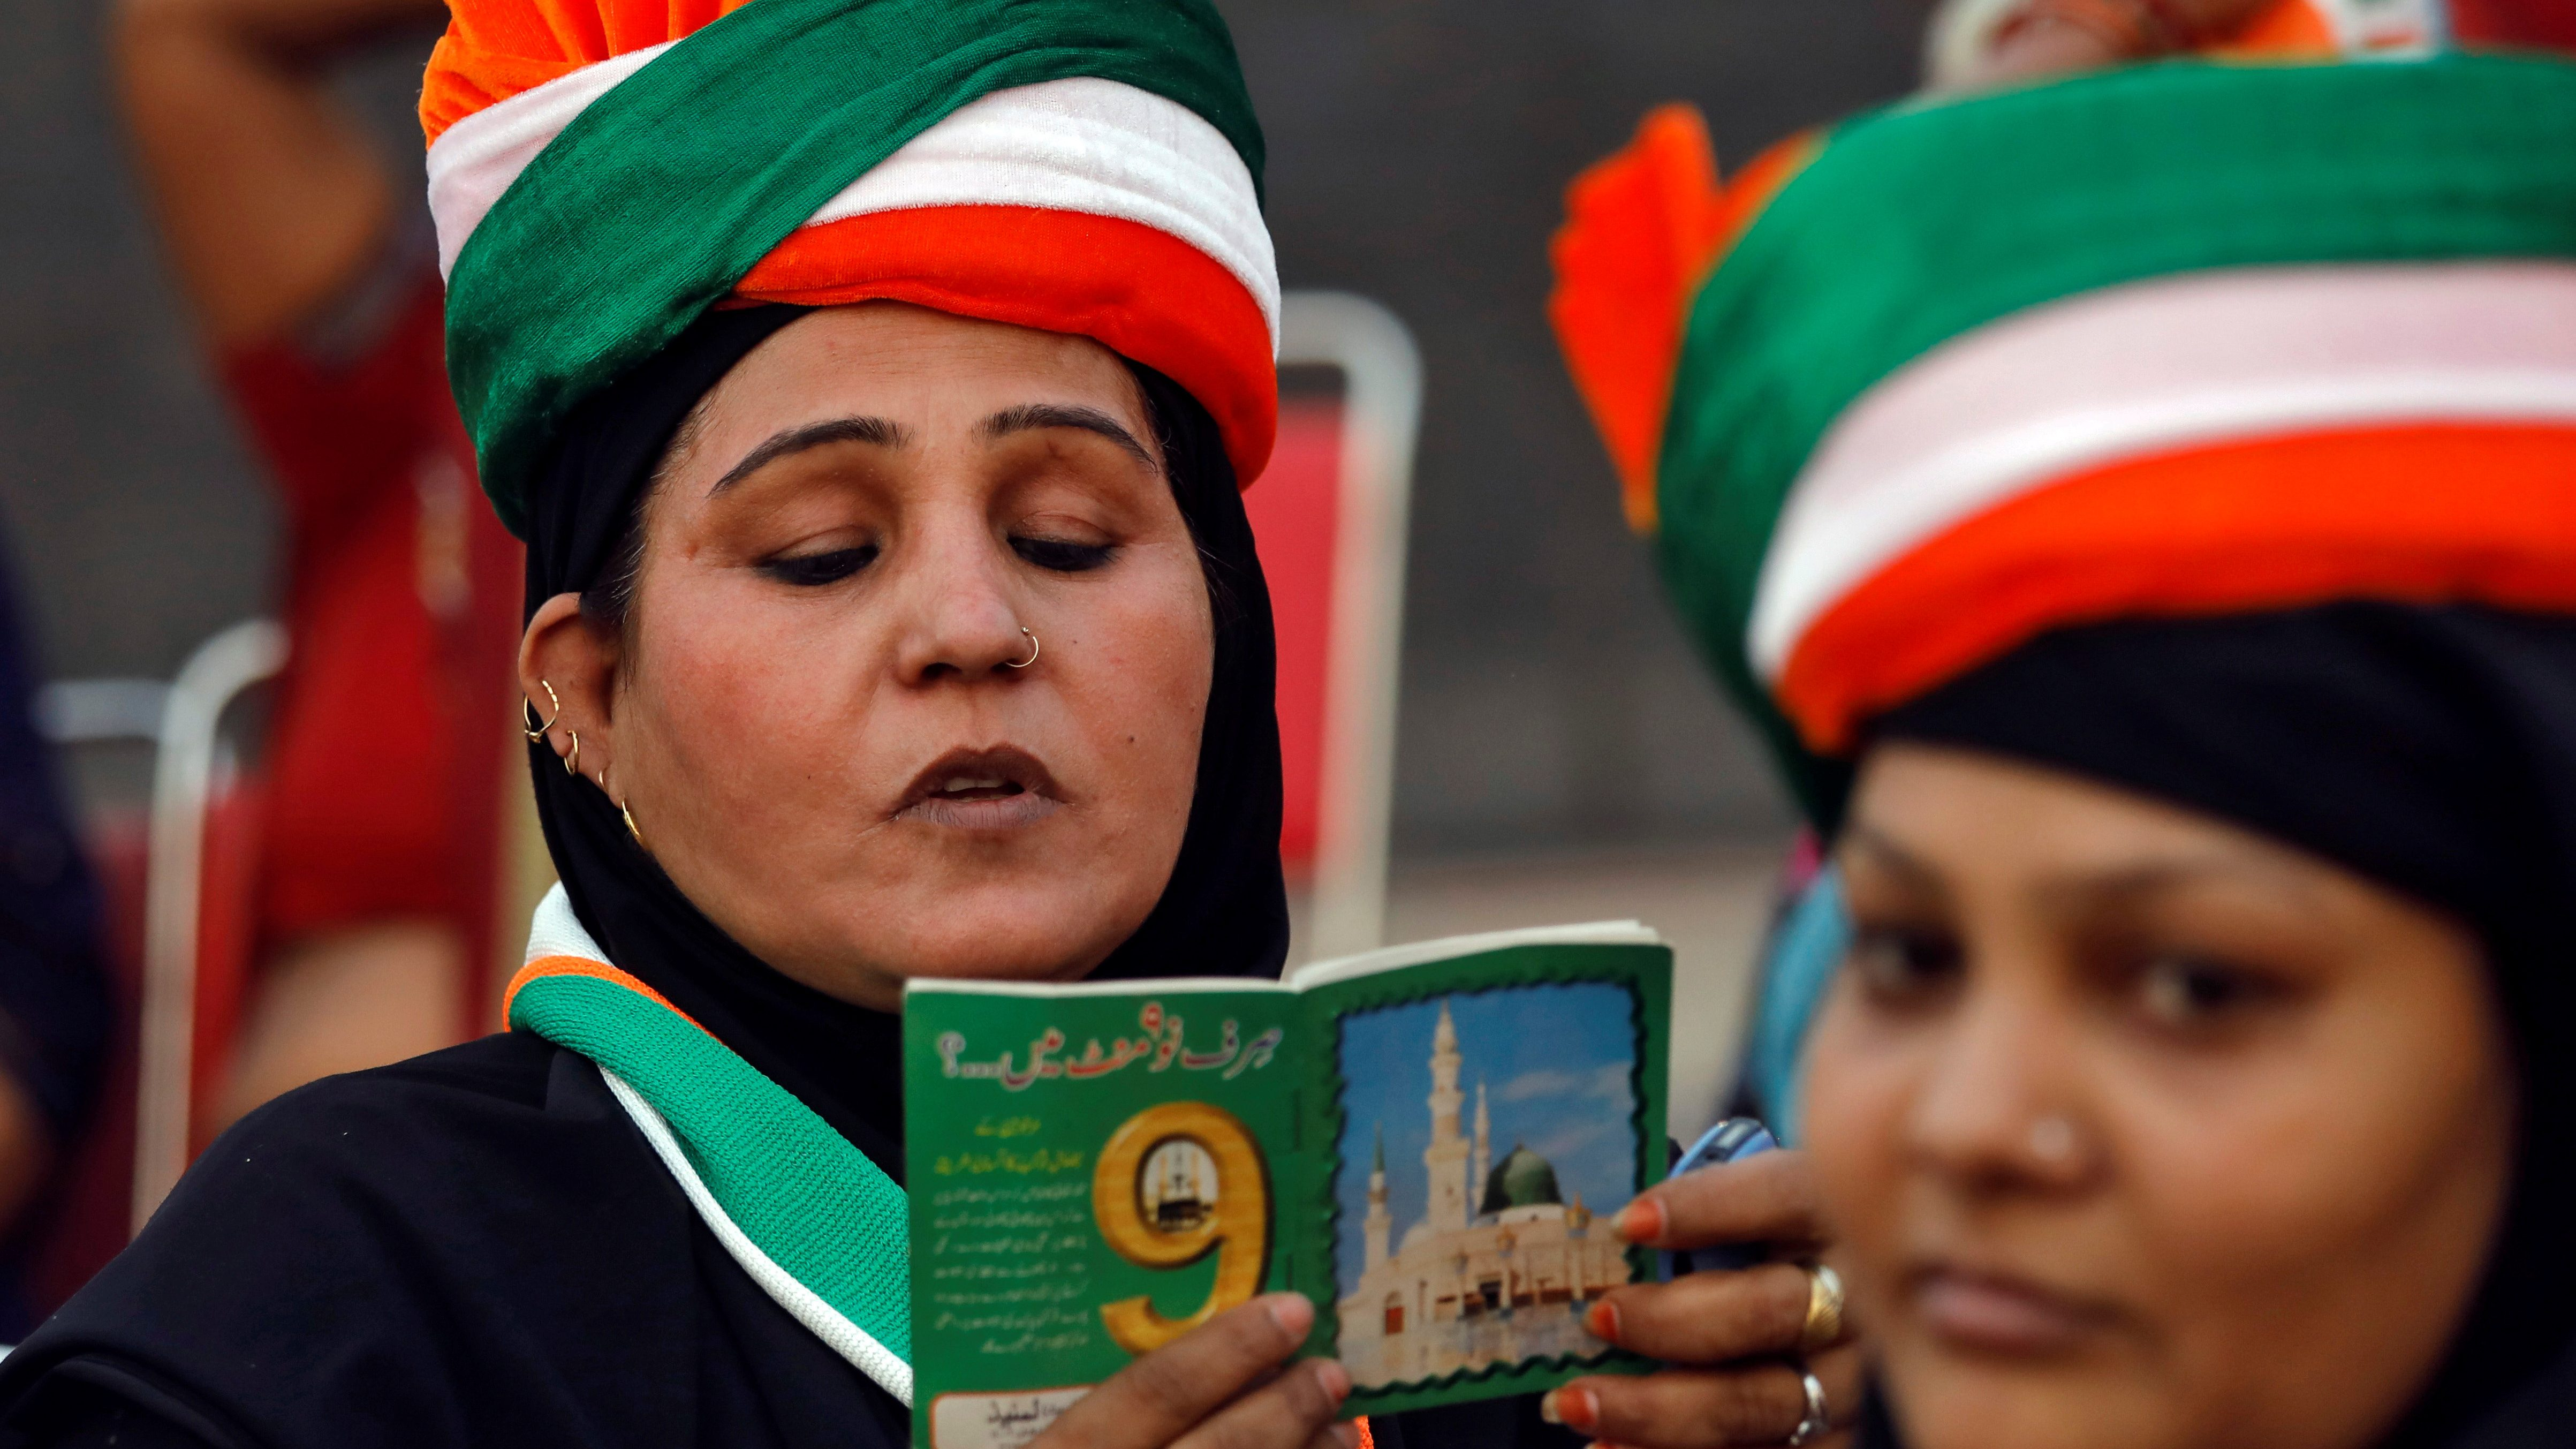 Muslim woman reads Koranic supplication as she attends an election campaign rally addressed by India's main opposition Congress party President Rahul Gandhi in New Delhi